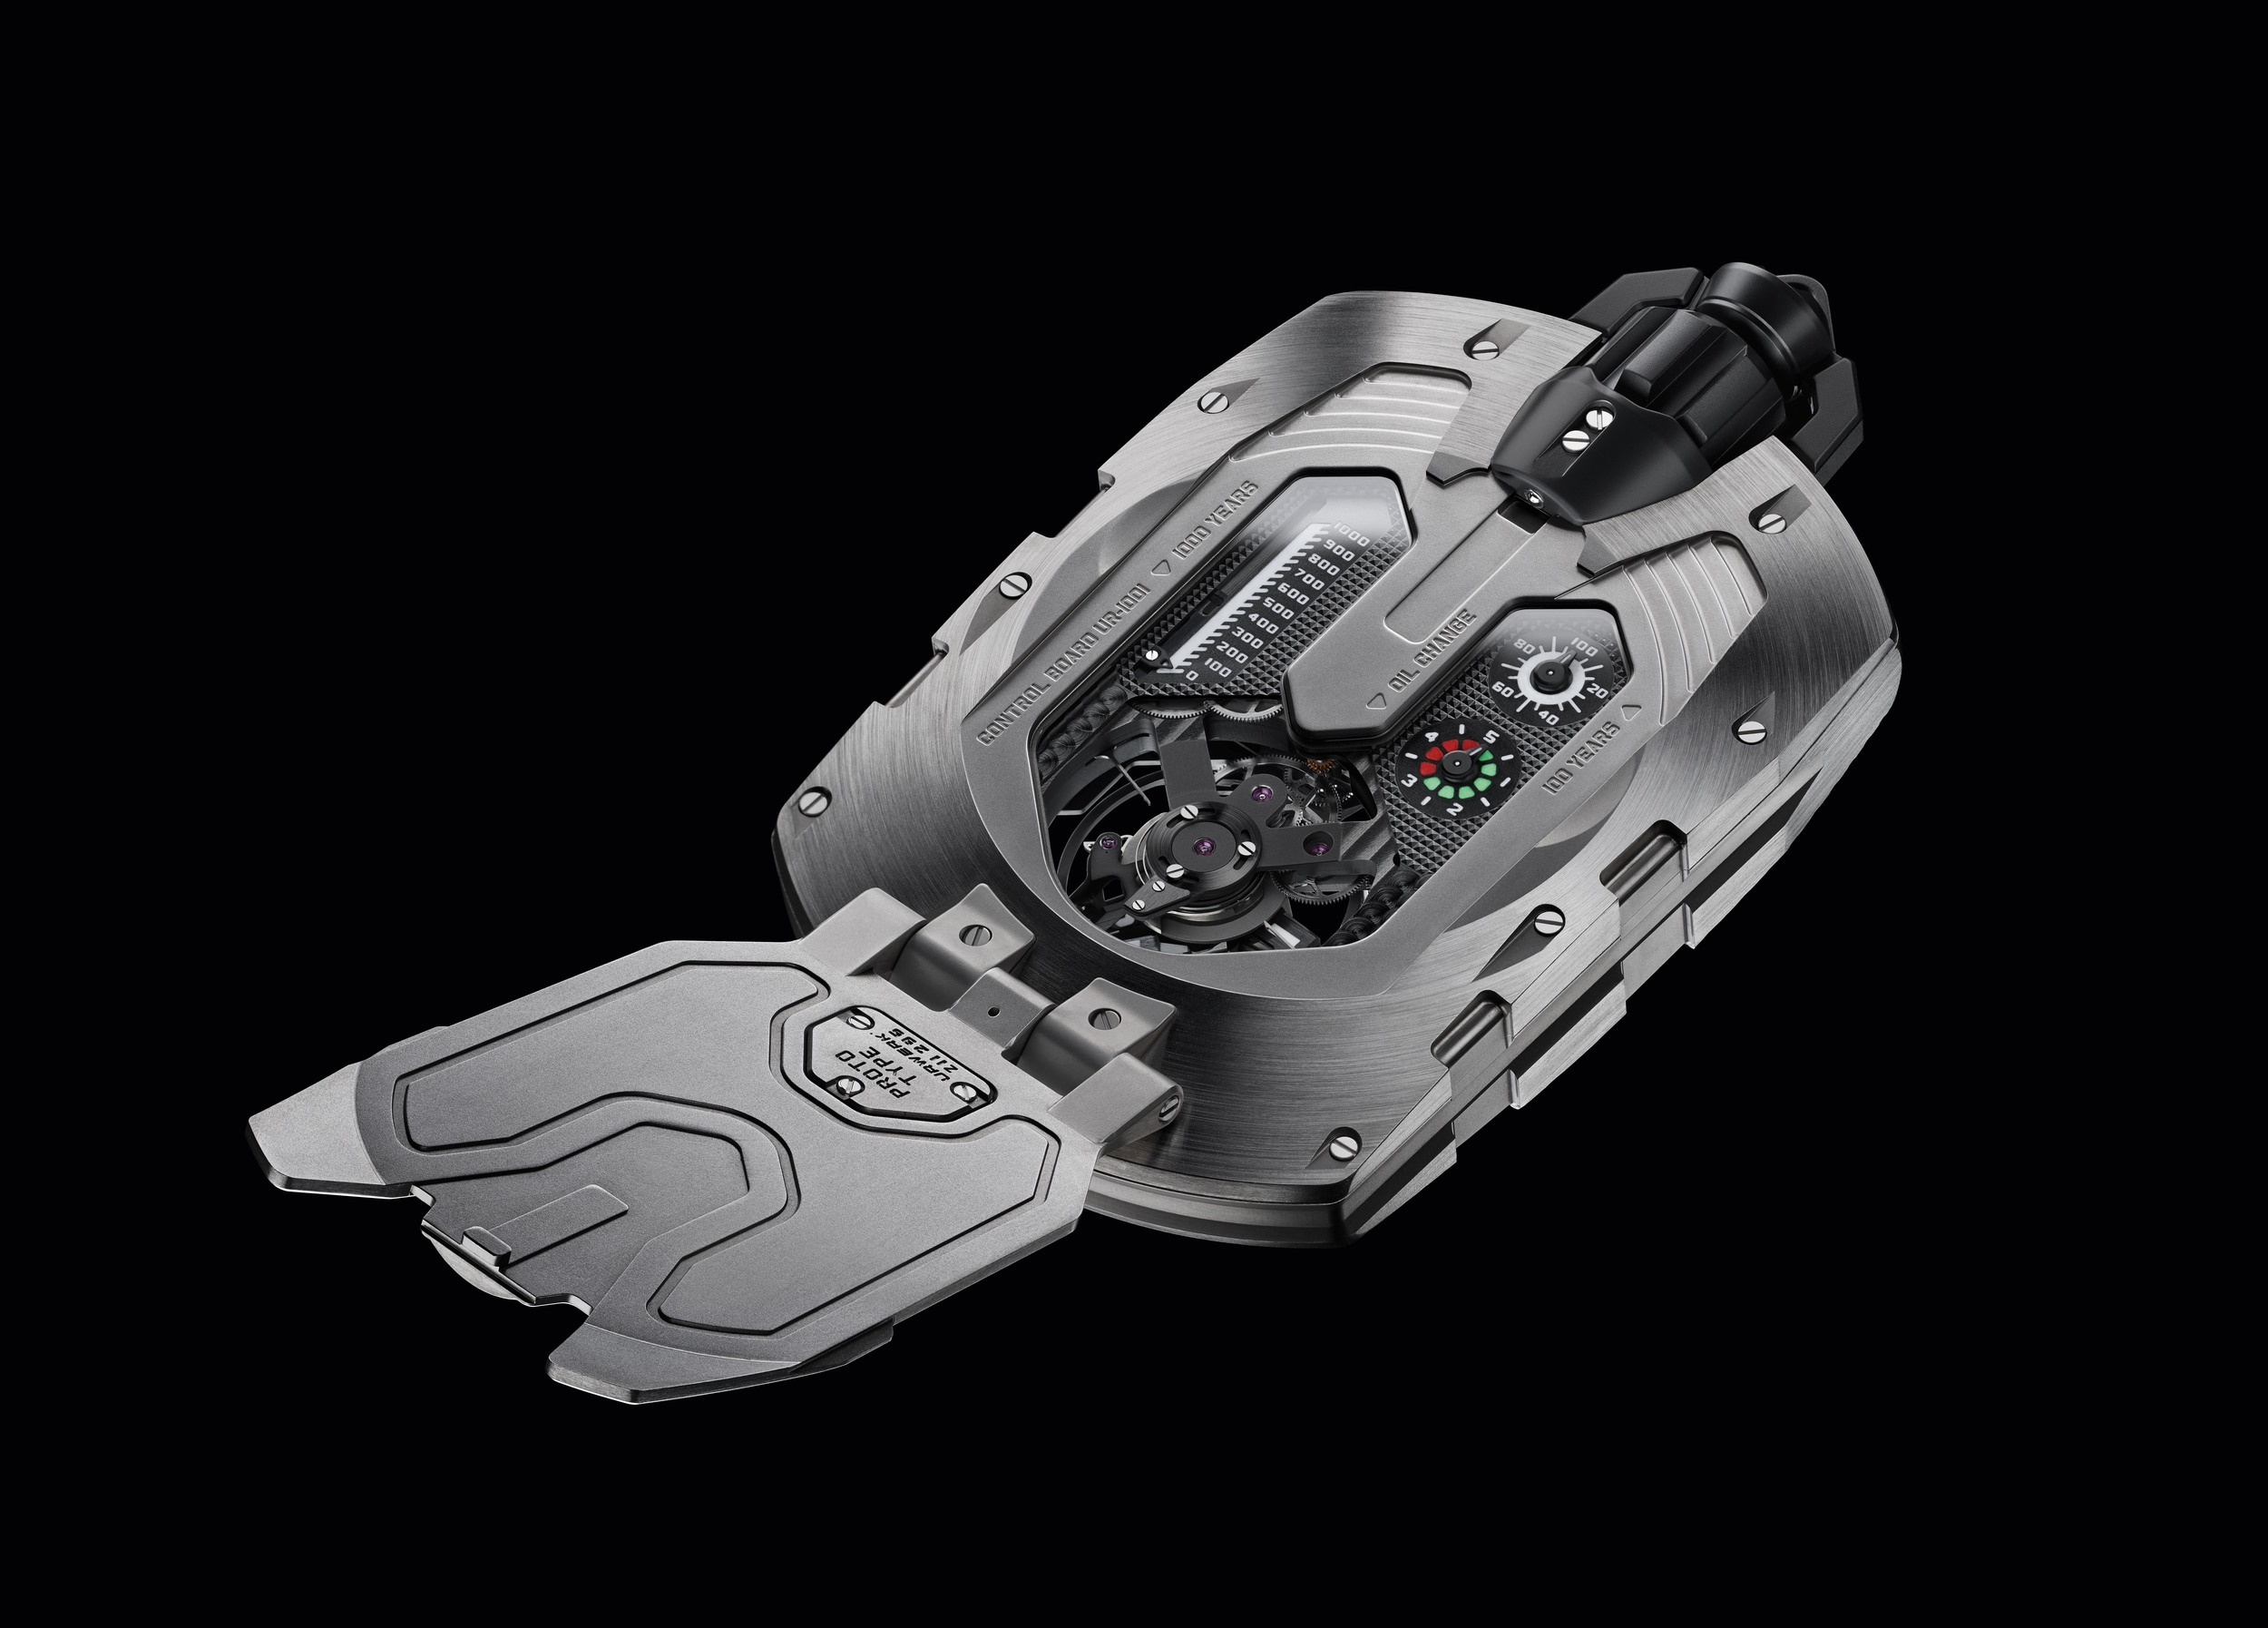 urwerk-watches-timepieces-chicago-geneva-seal-7.jpg